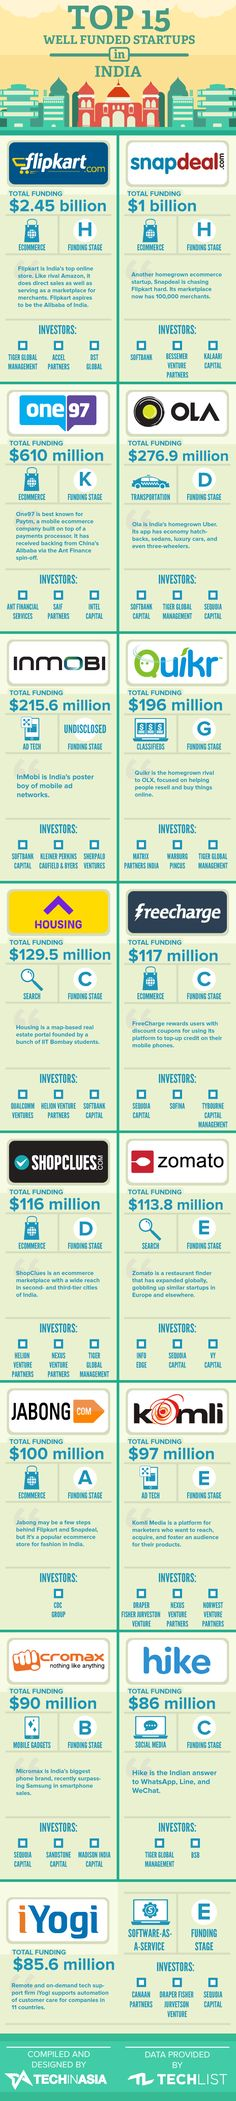 15-Most-Well-Funded-Startups-(India)-2